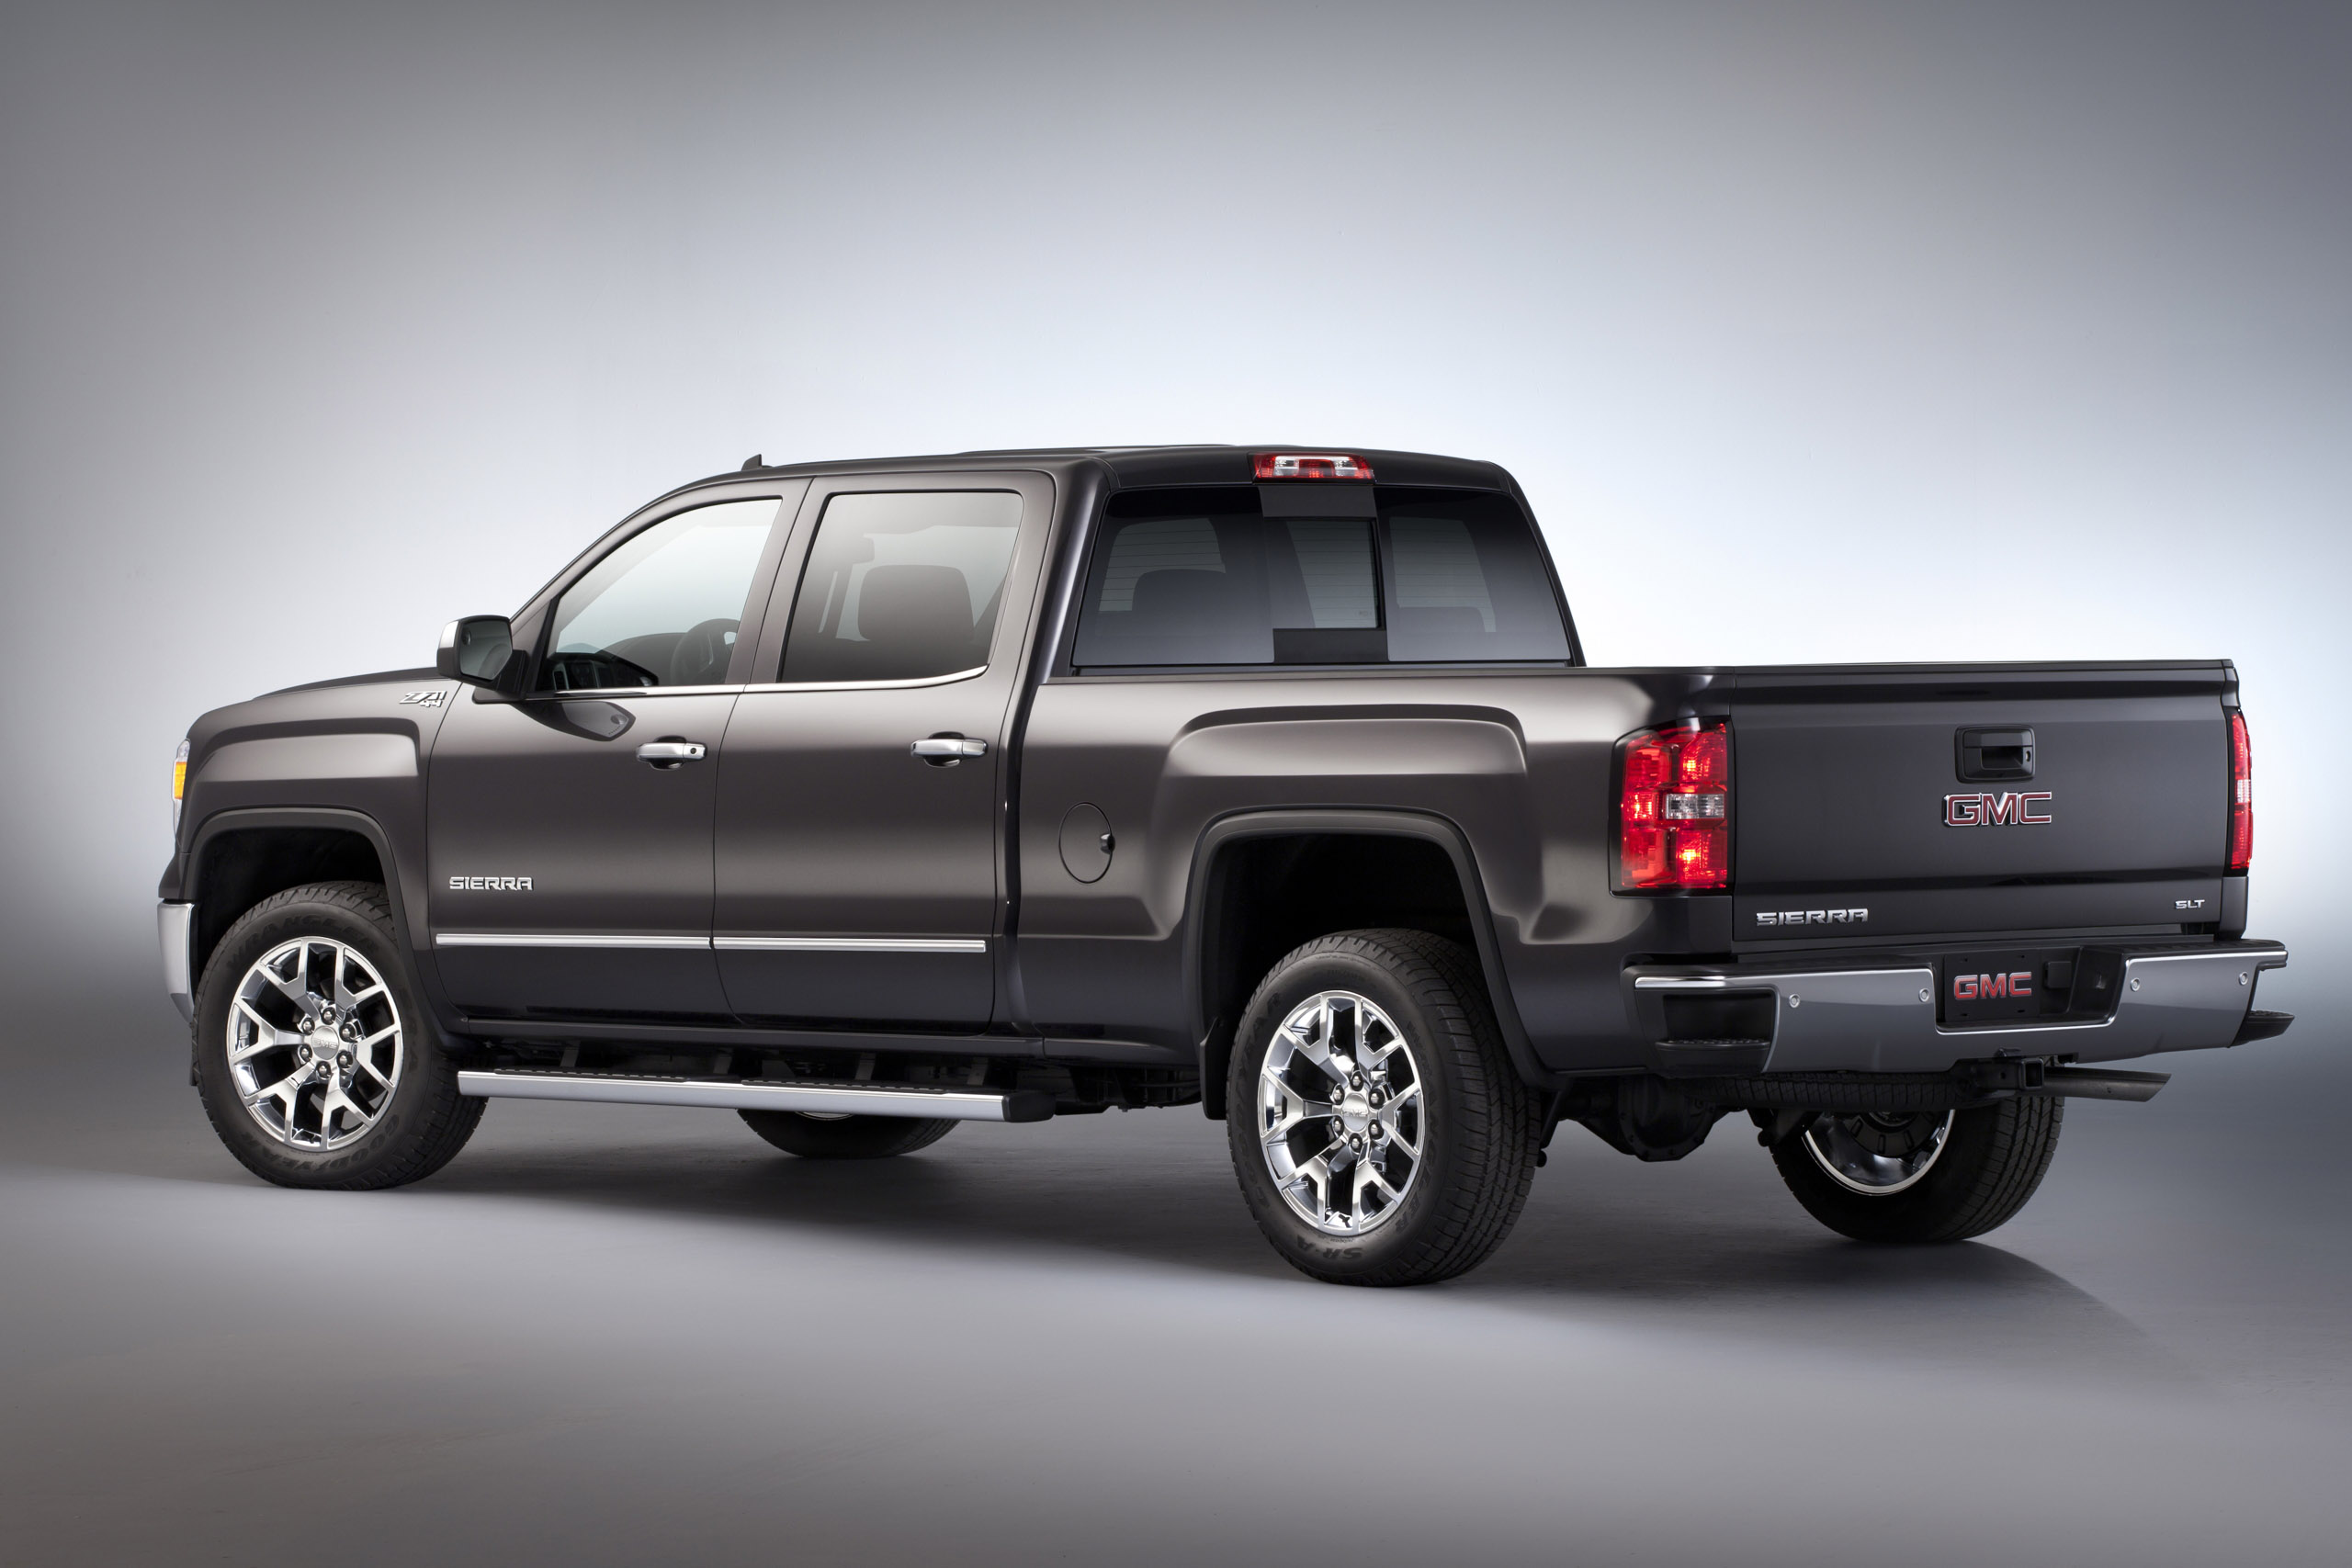 Gmc Debuts 2015 Sierra 1500 Carbon Editions Stylish And Distinct Off Road Xtreme